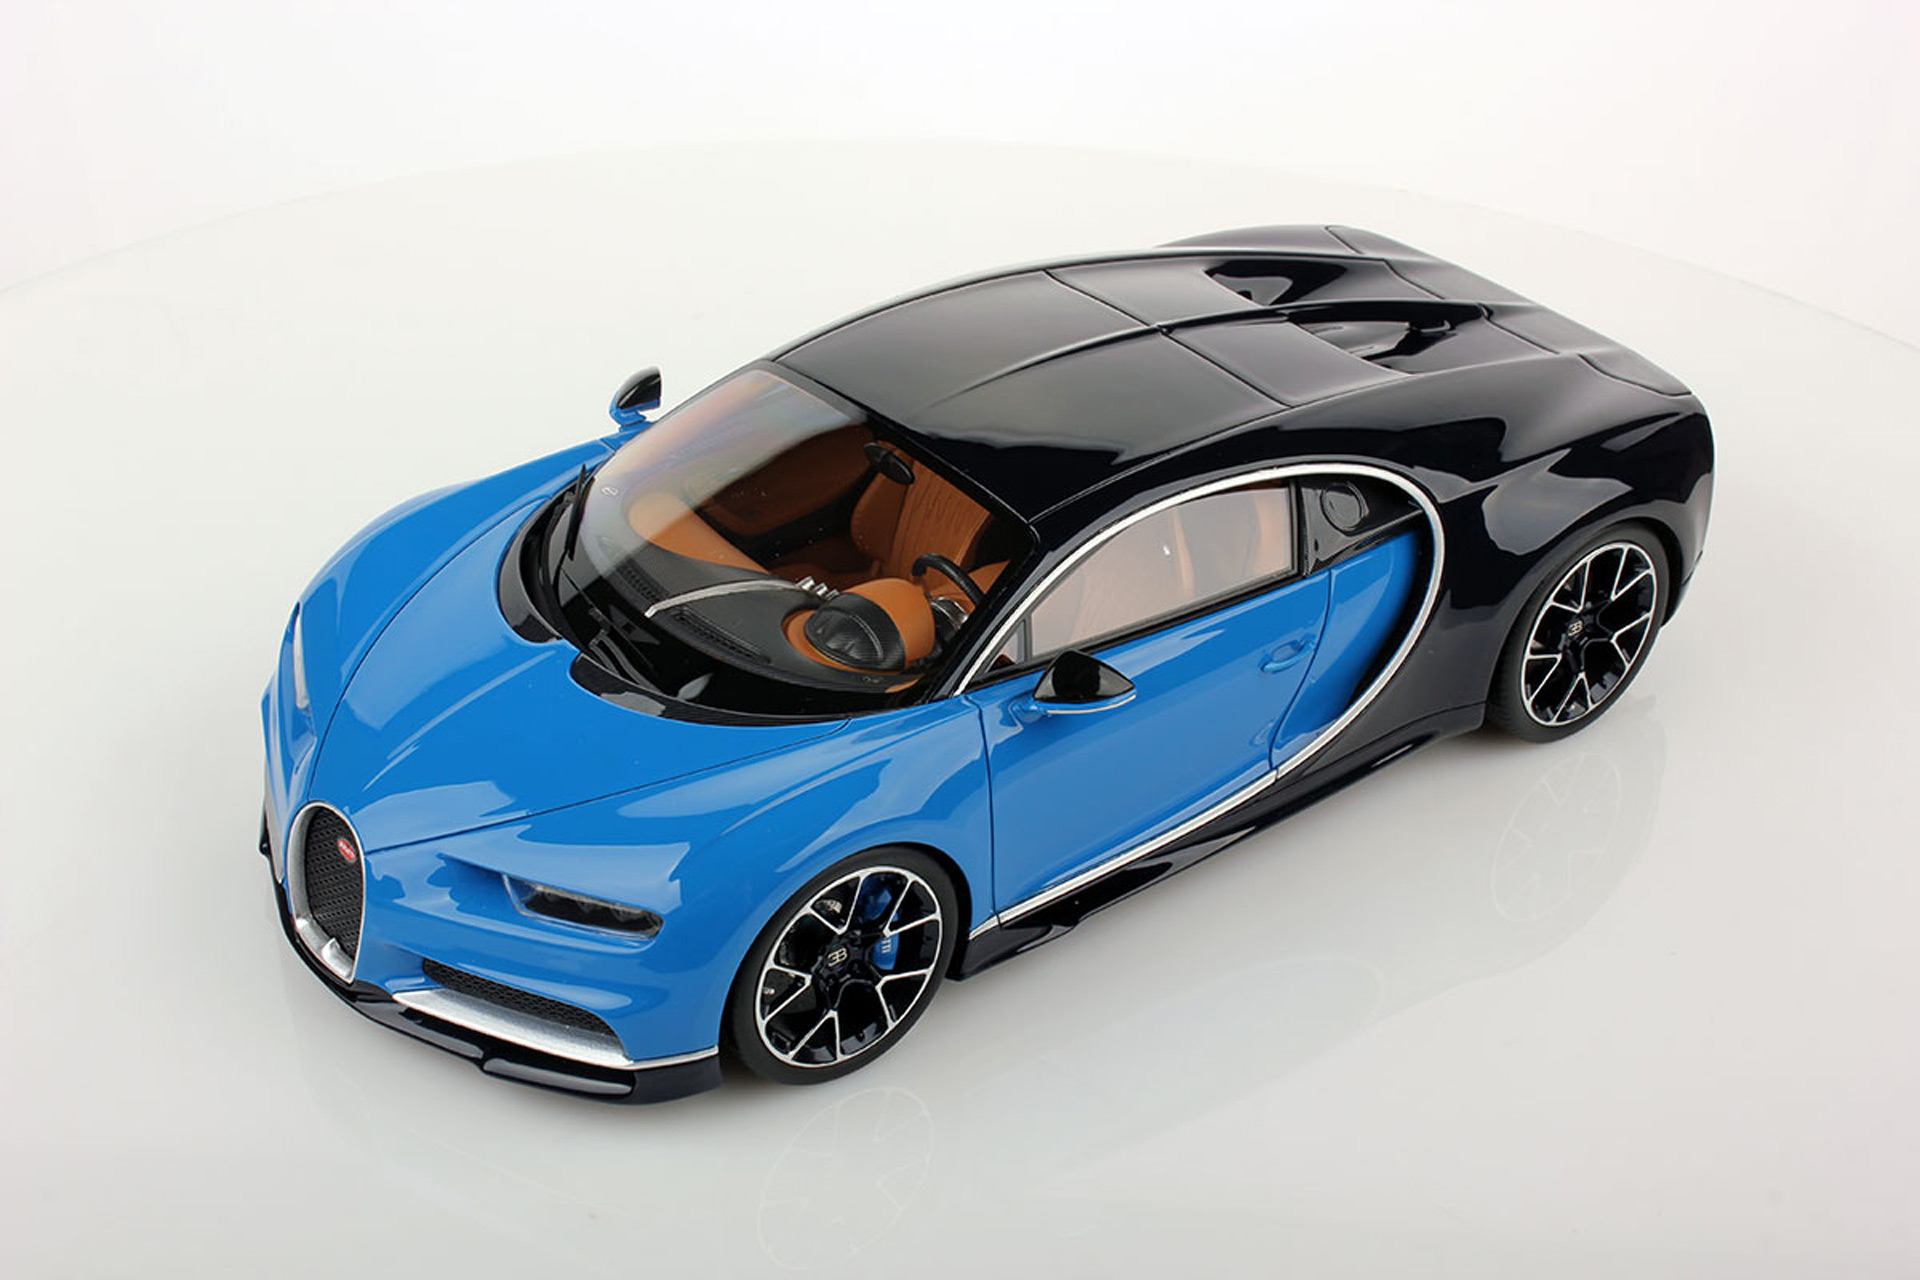 bugatti-chiron-118-scale-model-by-mr-collection-models_100562774_h Modern Bugatti Veyron In Transformers 4 Cars Trend